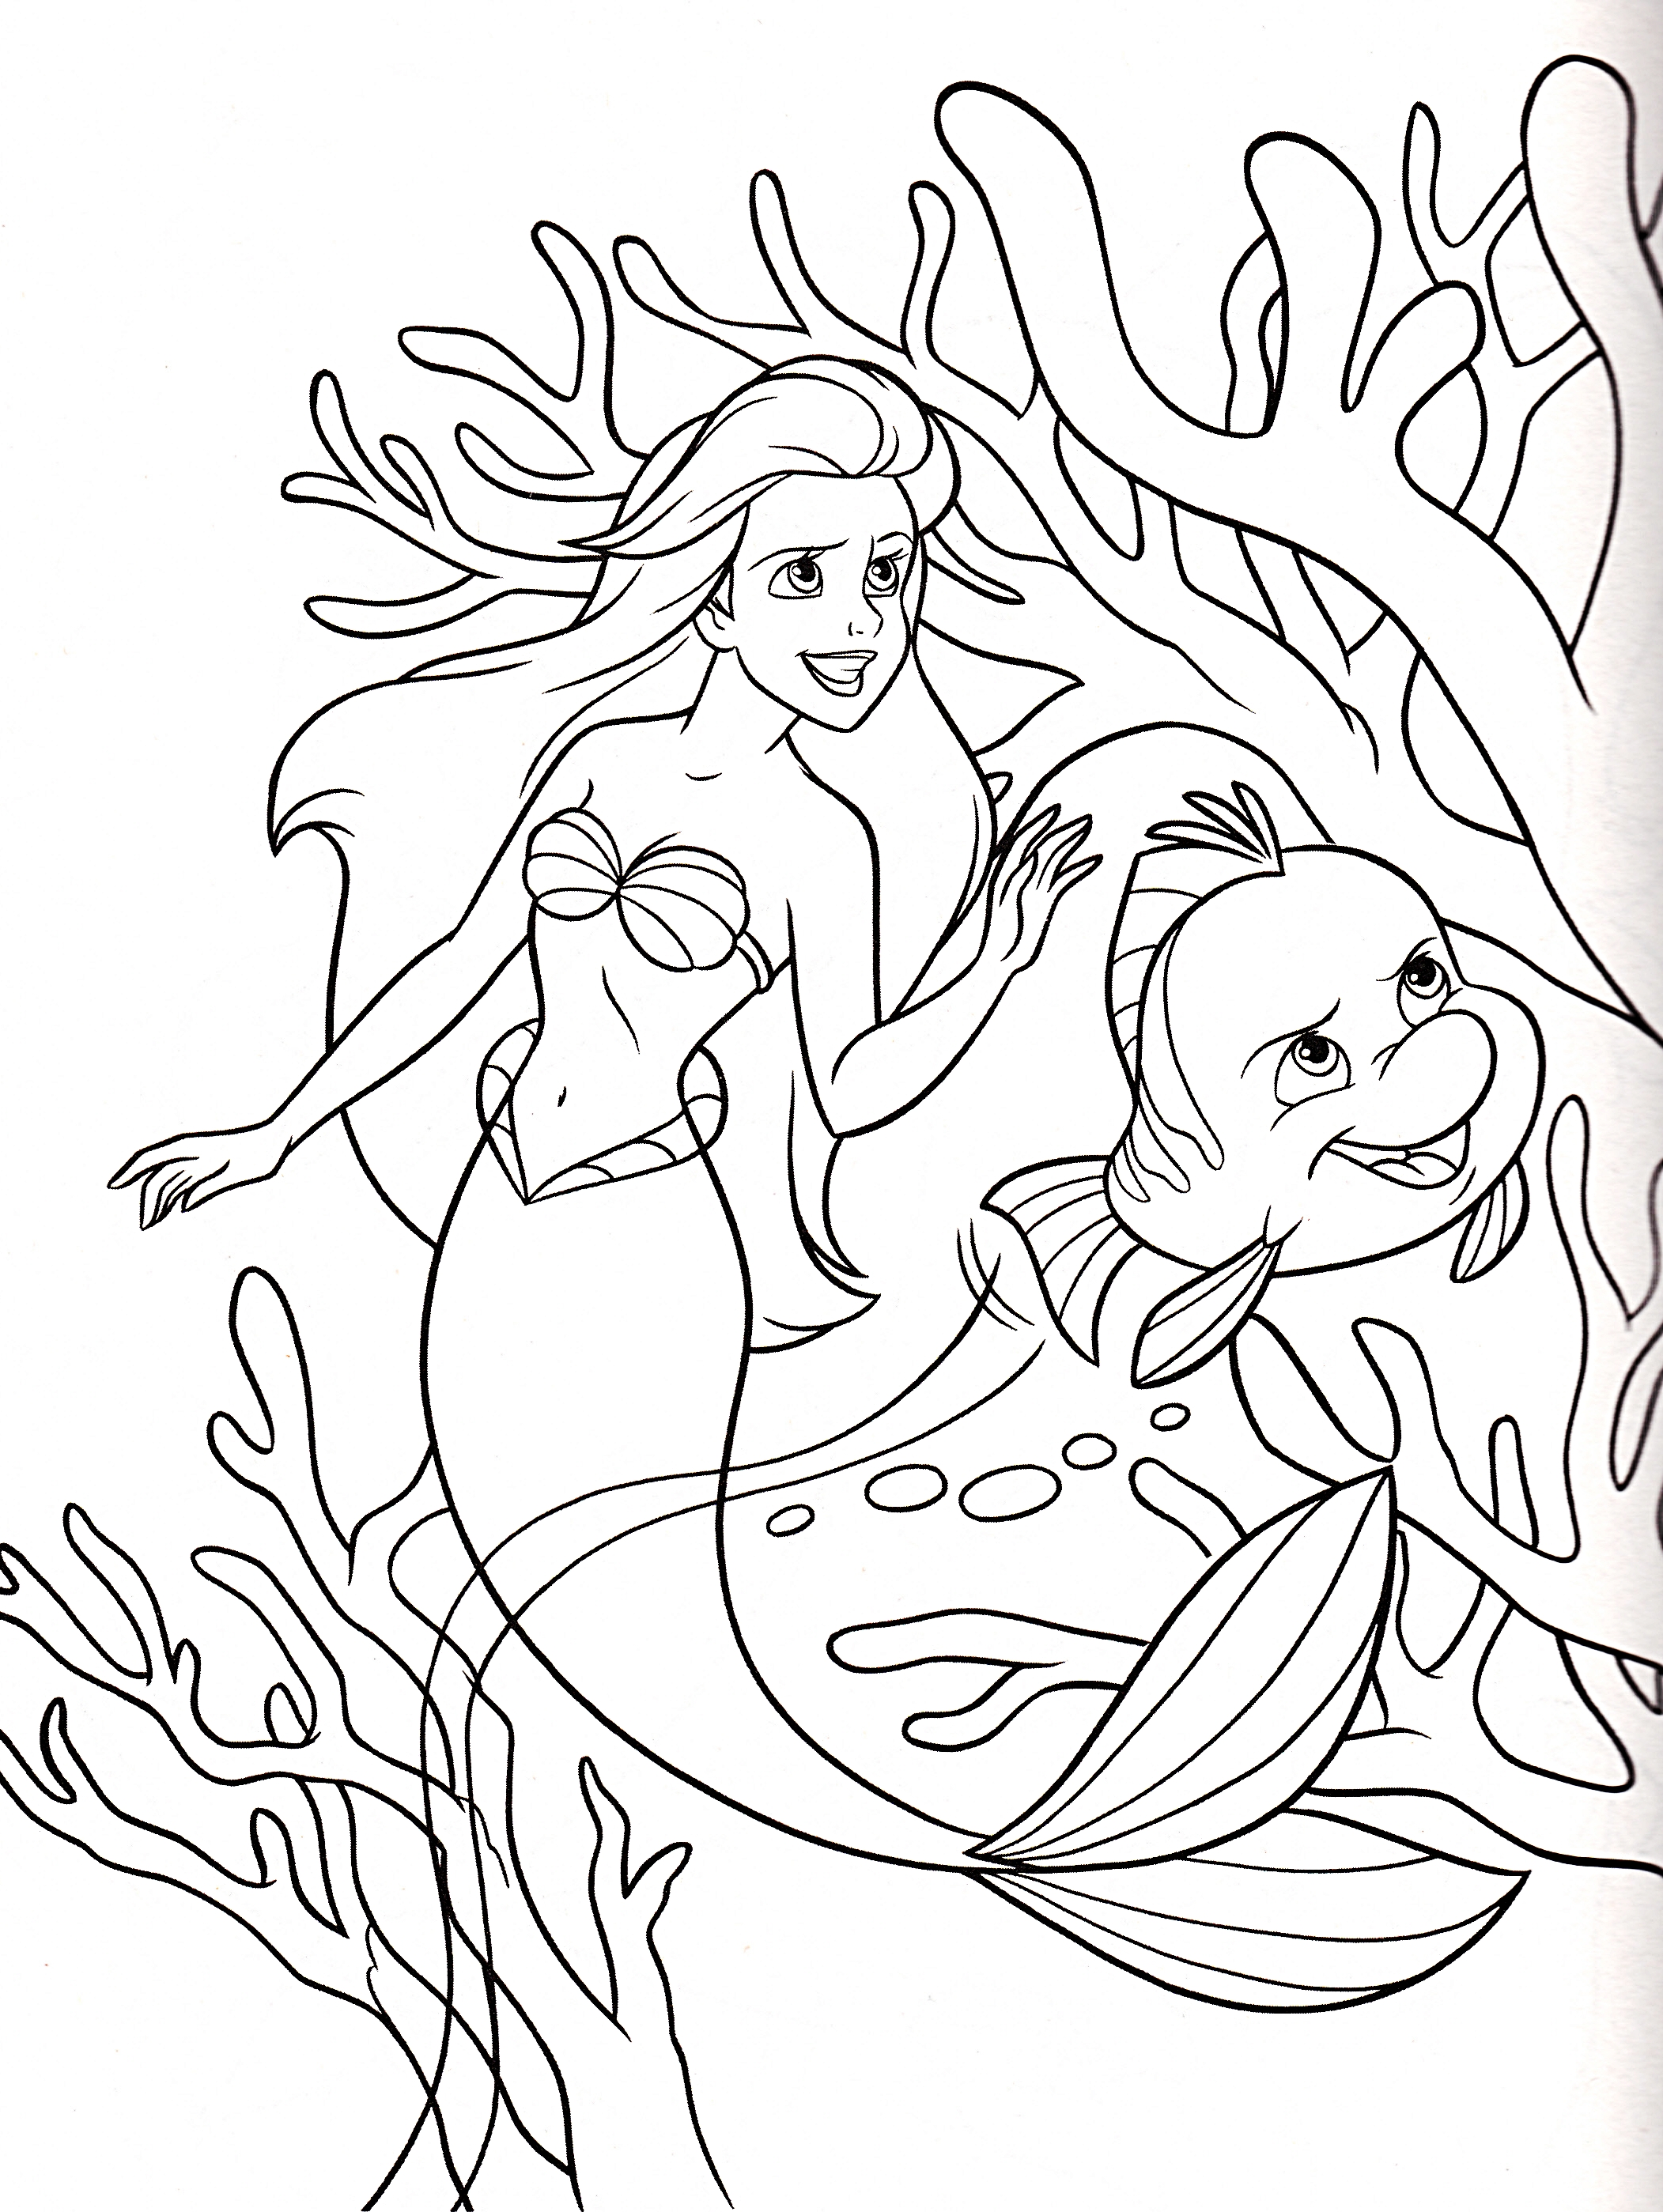 Disney Coloring Pages 25 Coloring Kids Coloring Pages To Print And Color